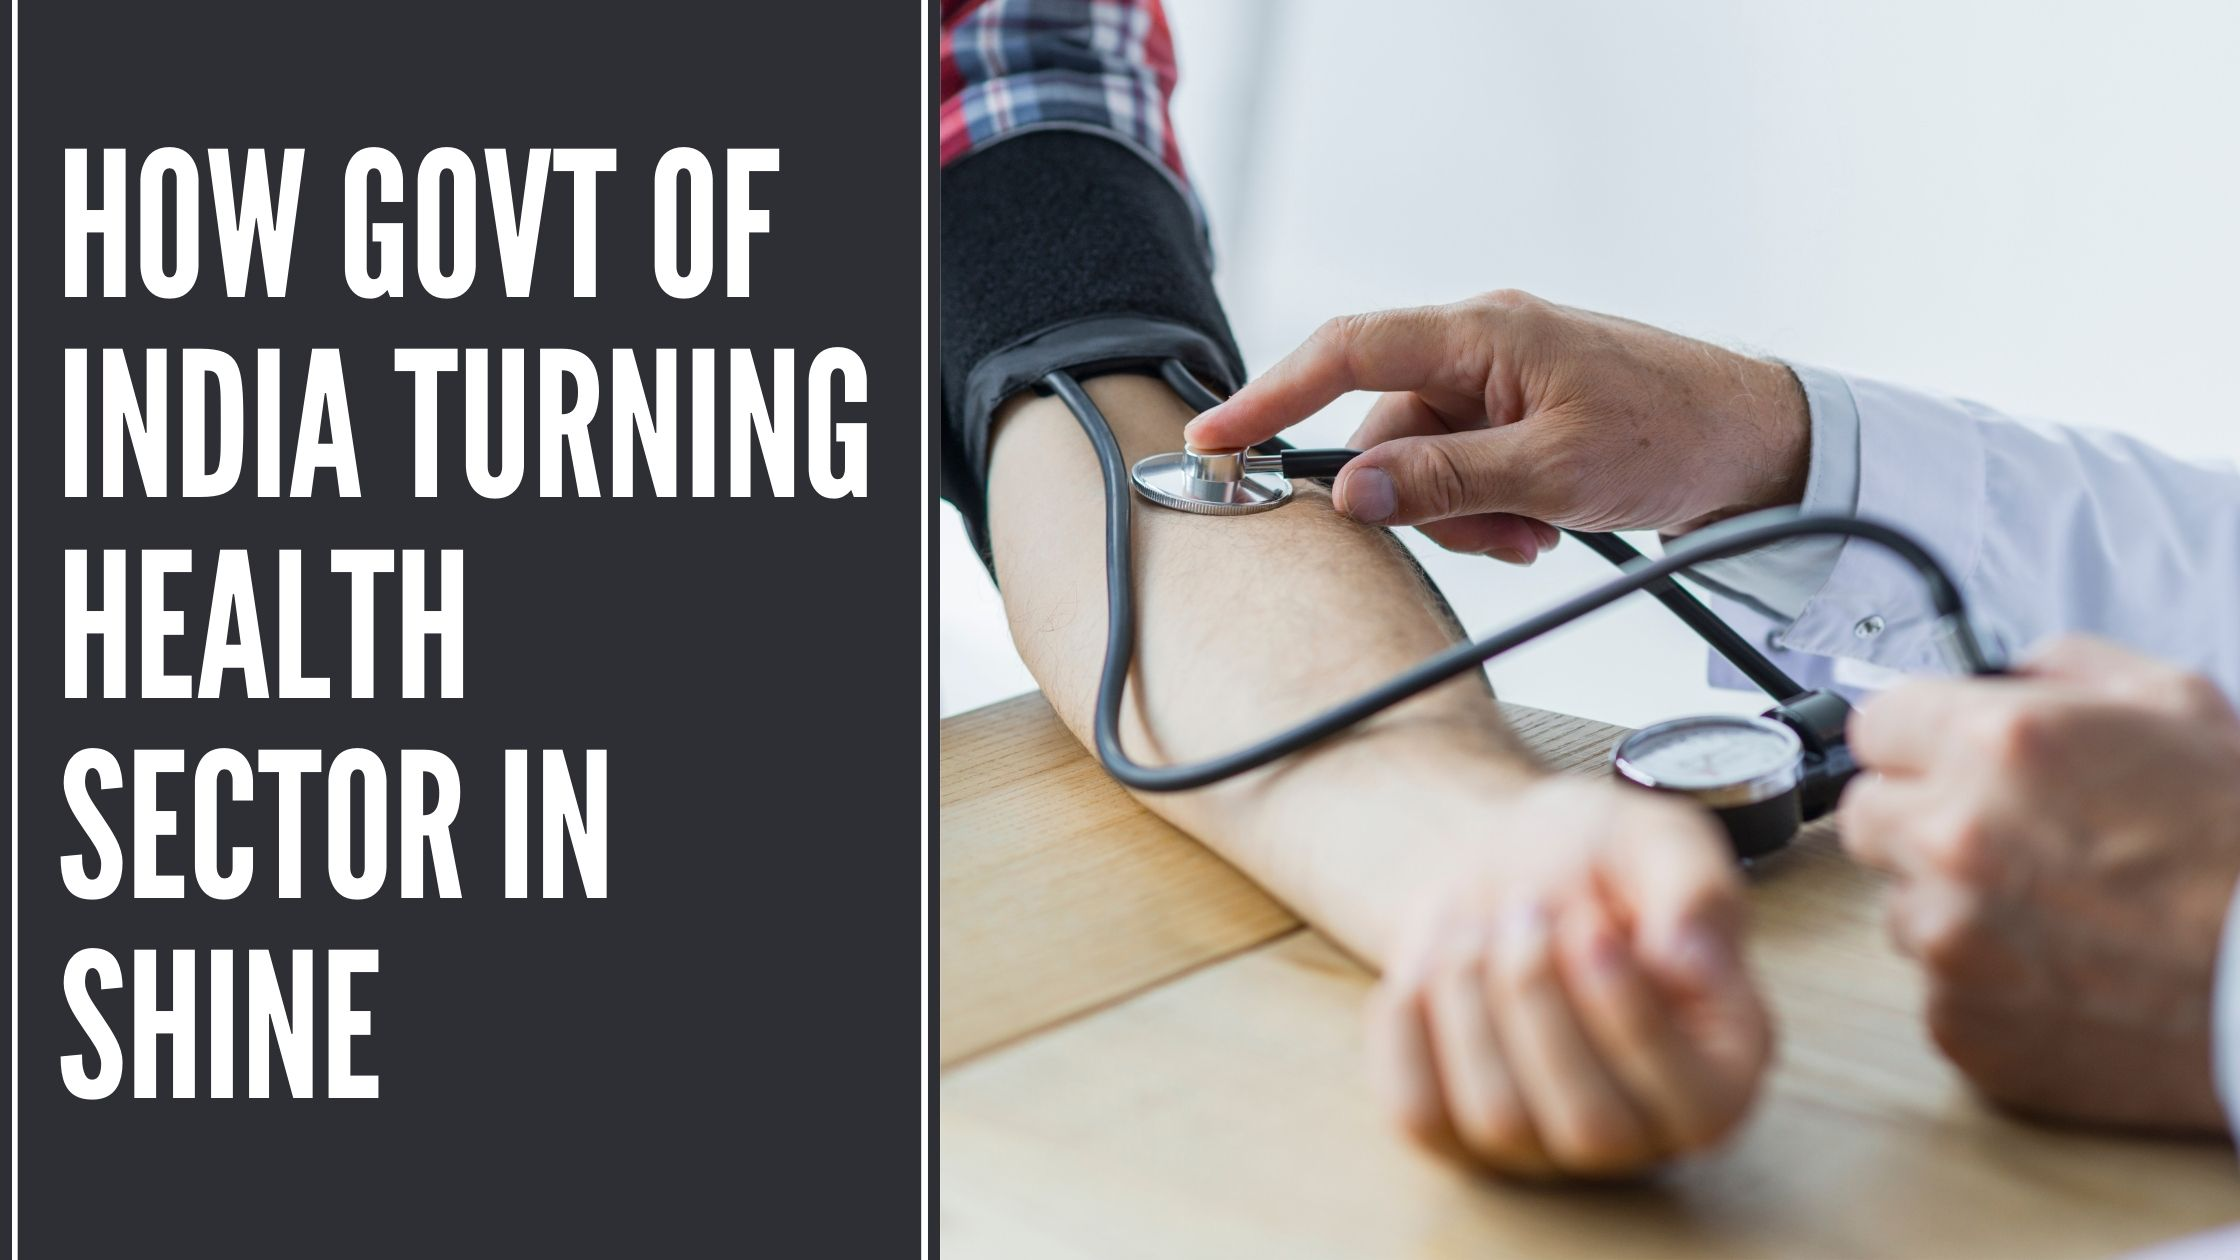 How Govt of India Turning Health Sector in Shine